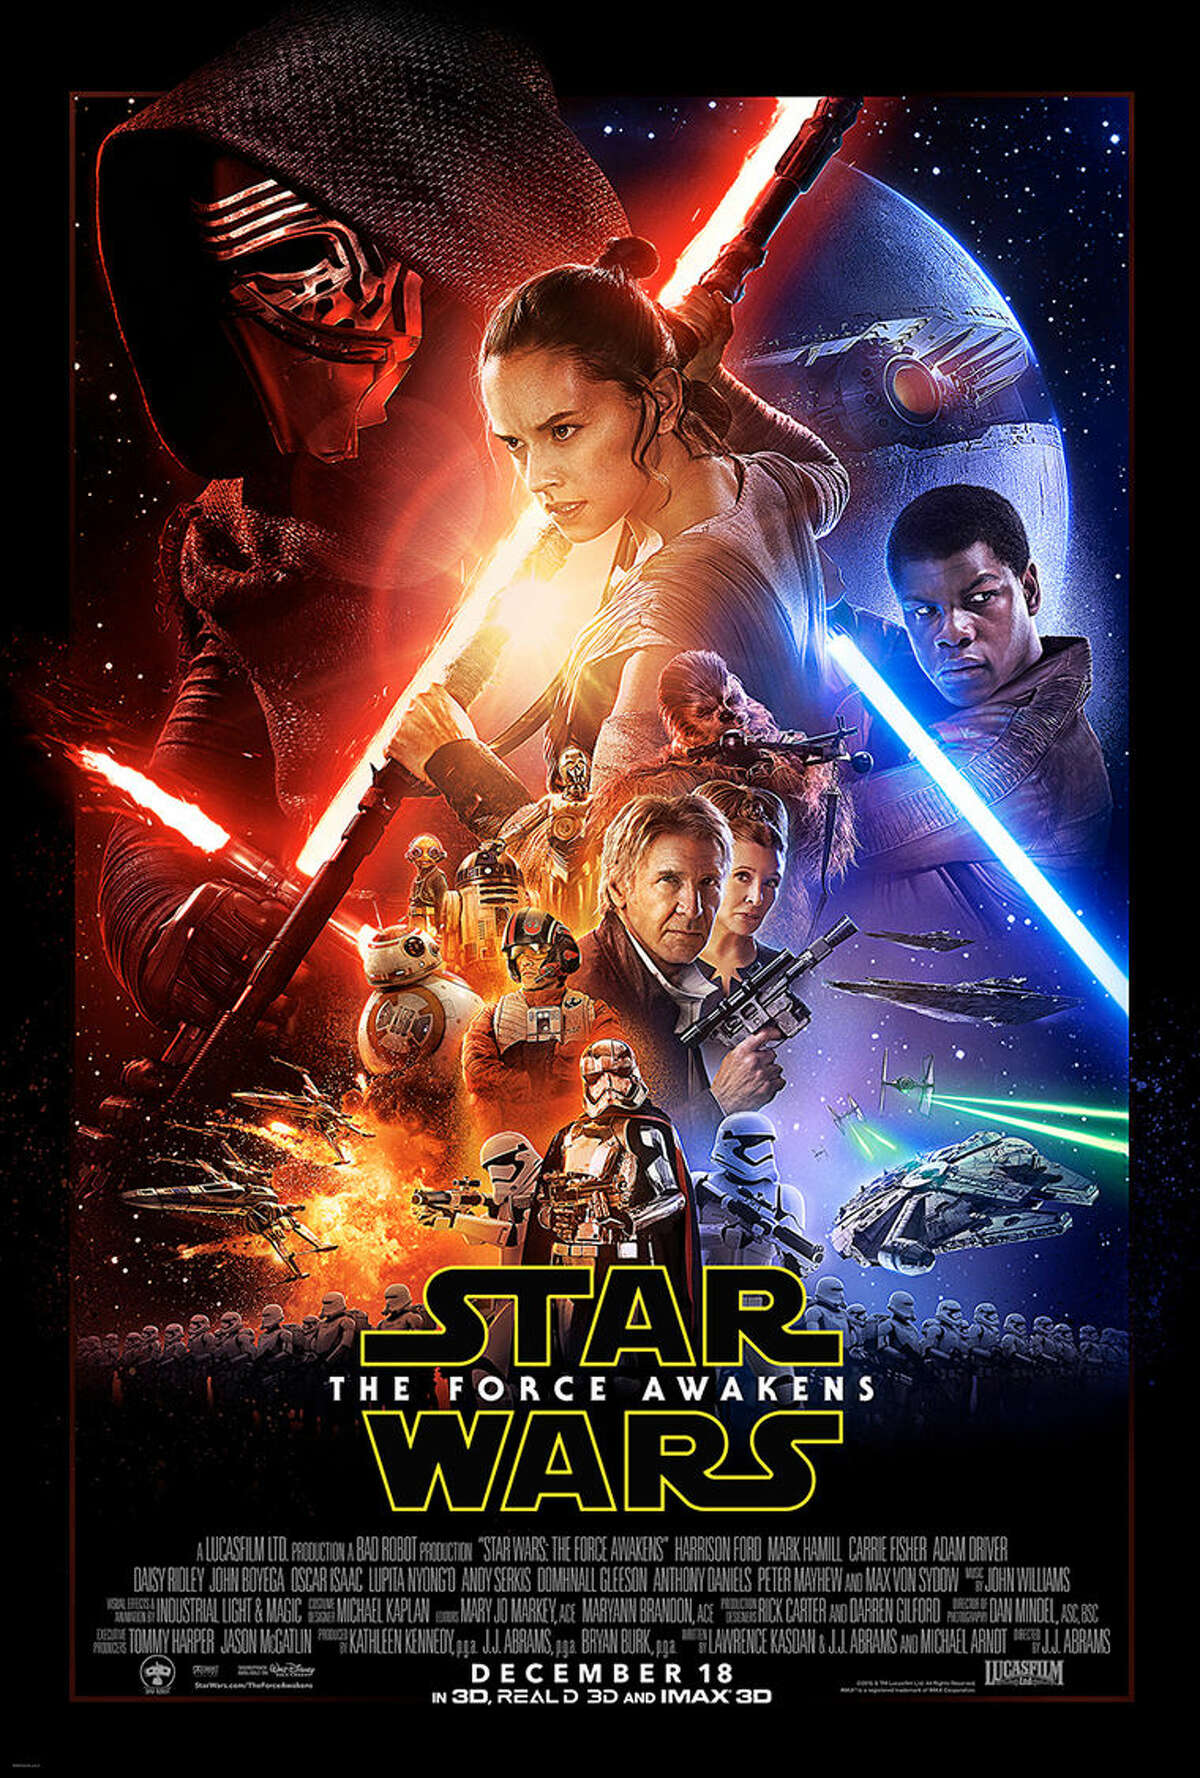 """This undated photo provided by Disney shows the poster for the new film, """"Star Wars: The Force Awakens."""" """"Star Wars"""" fans eagerly await the latest trailer for """"The Force Awakens,"""" airing during halftime of """"Monday Night Football,"""" on Oct. 19, 2015. The game starts at 5:15 p.m. PDT/8:15 p.m. EDT. (Disney via AP)"""